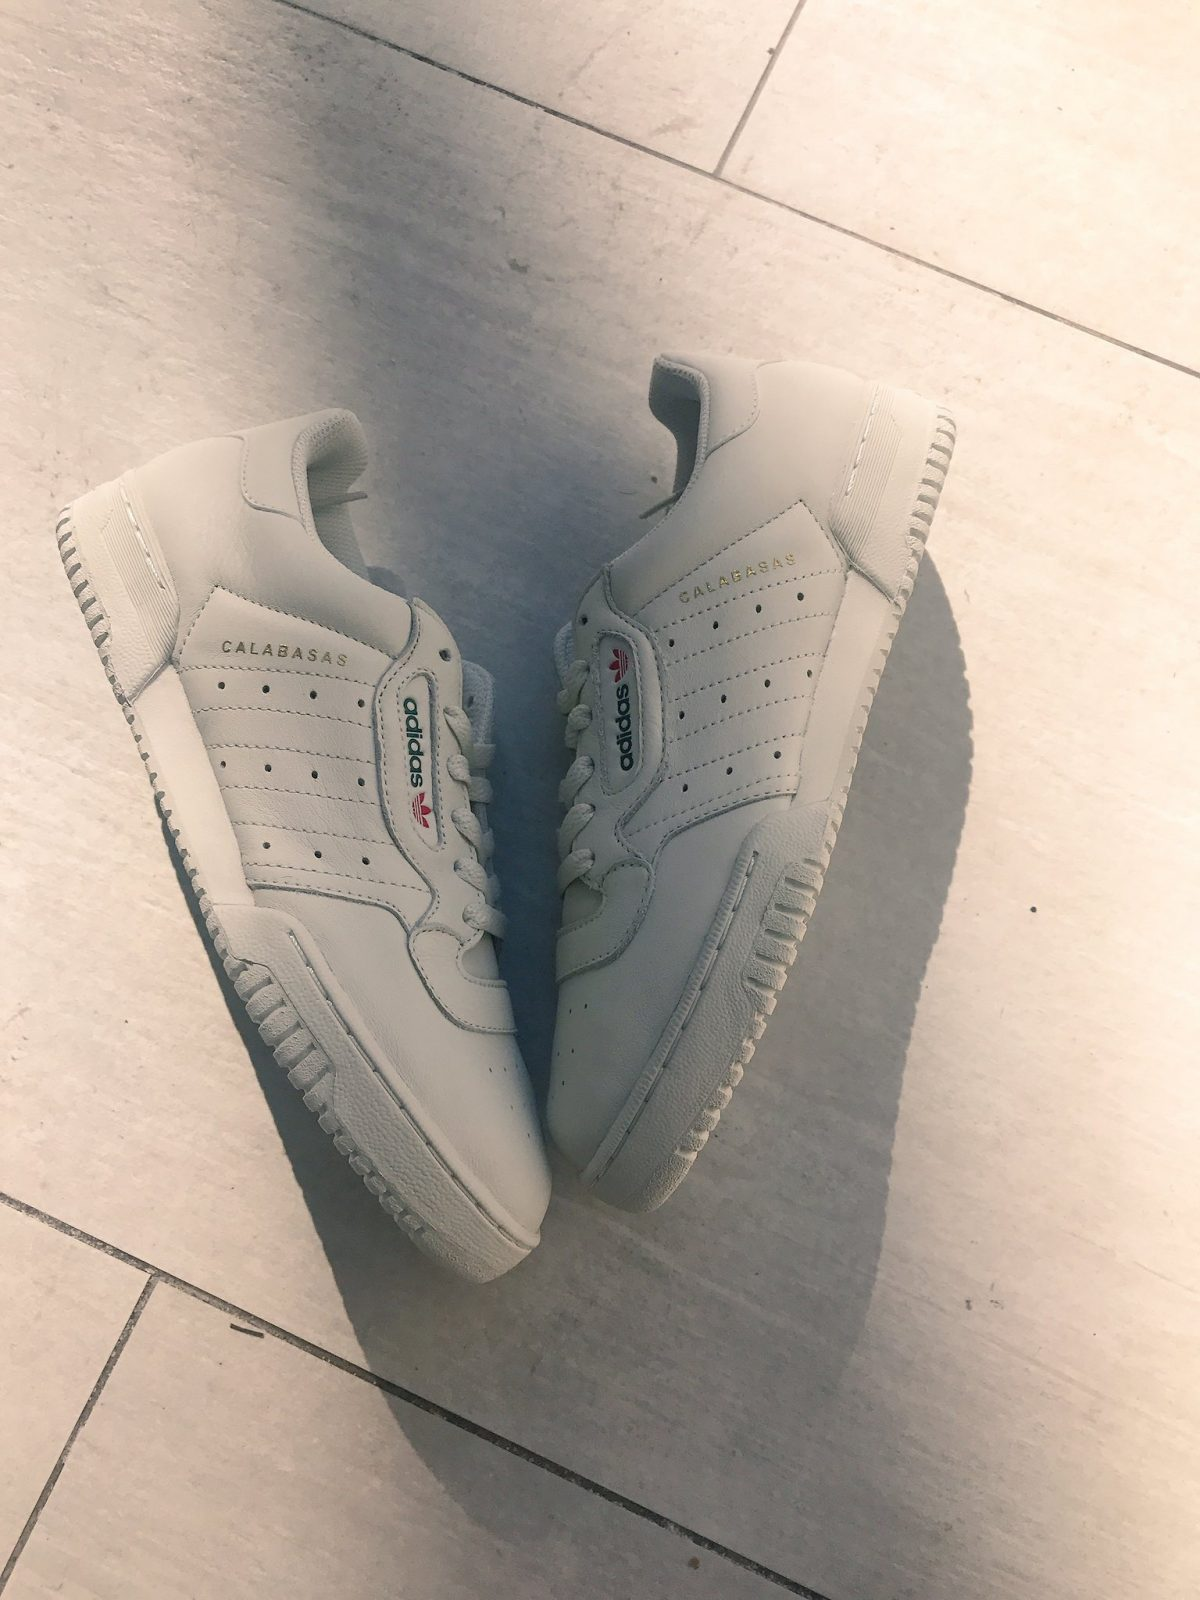 After months of speculation and long distance paparazzi shots we finally get a detailed look at the Yeezy X Adidas Powerphase Calabasas